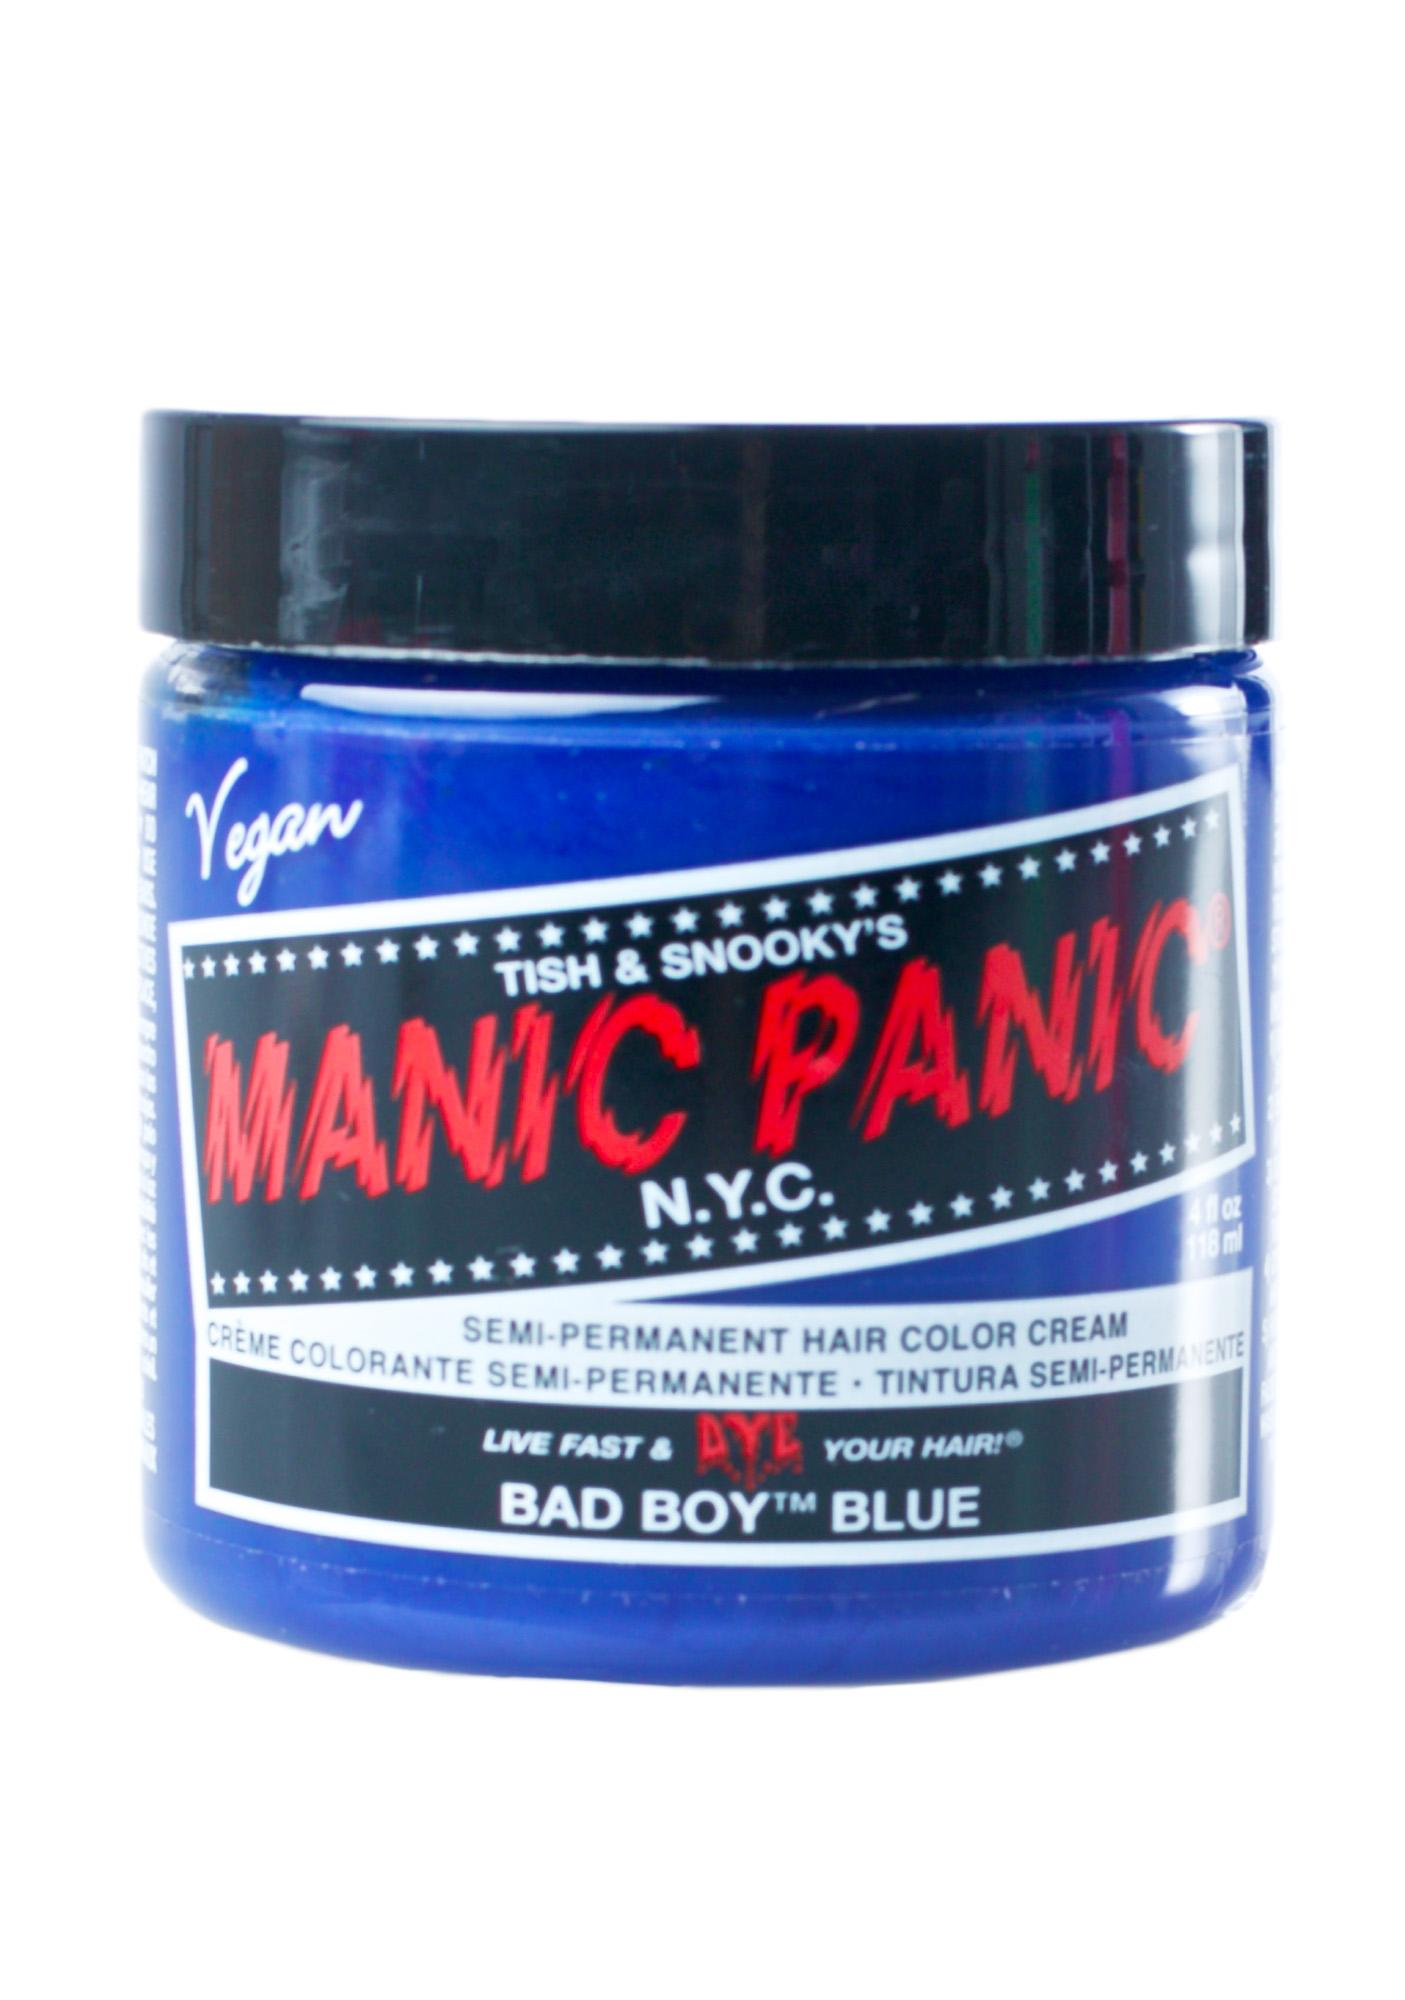 Manic Panic Bad Boy Blue High Voltage Hair Dye